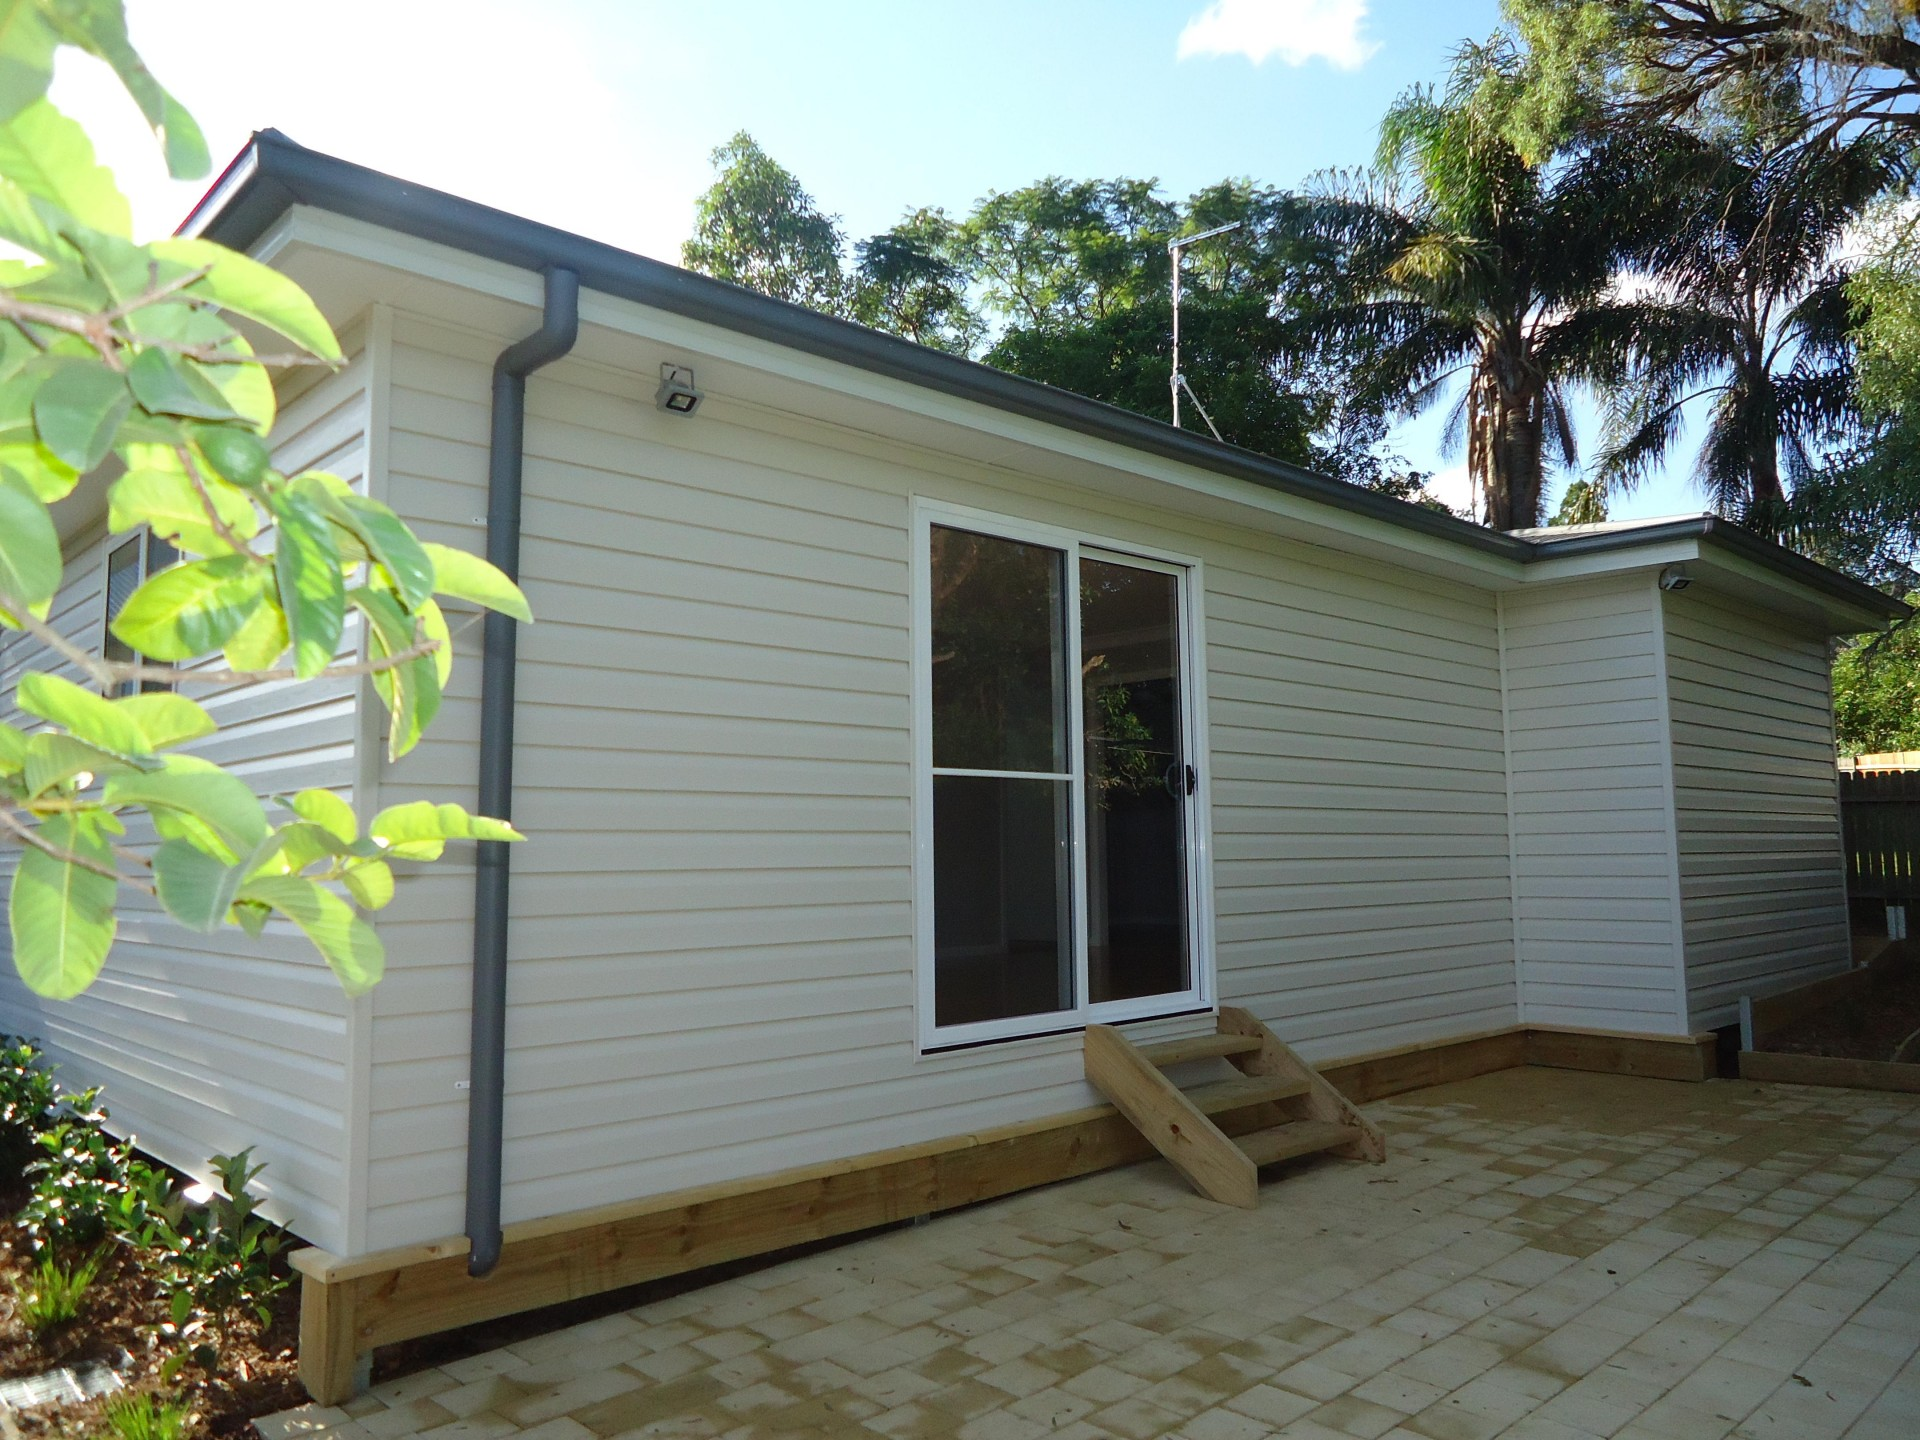 Air Conditioning & Private Yard